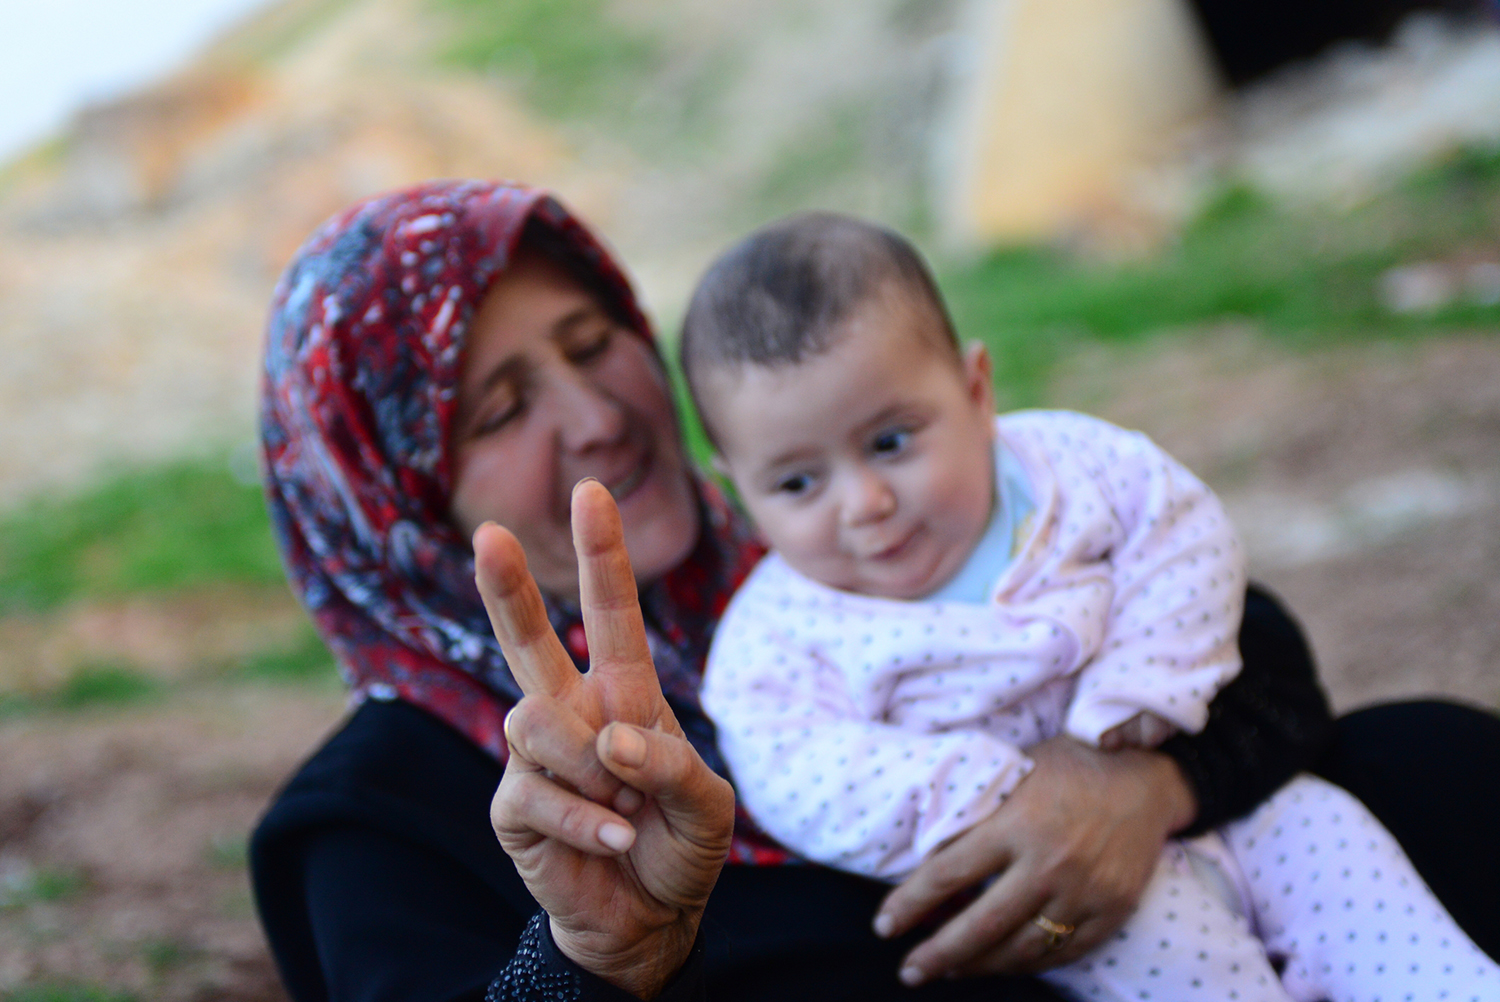 Syrian refugee mother with baby holds a hand peace sign.